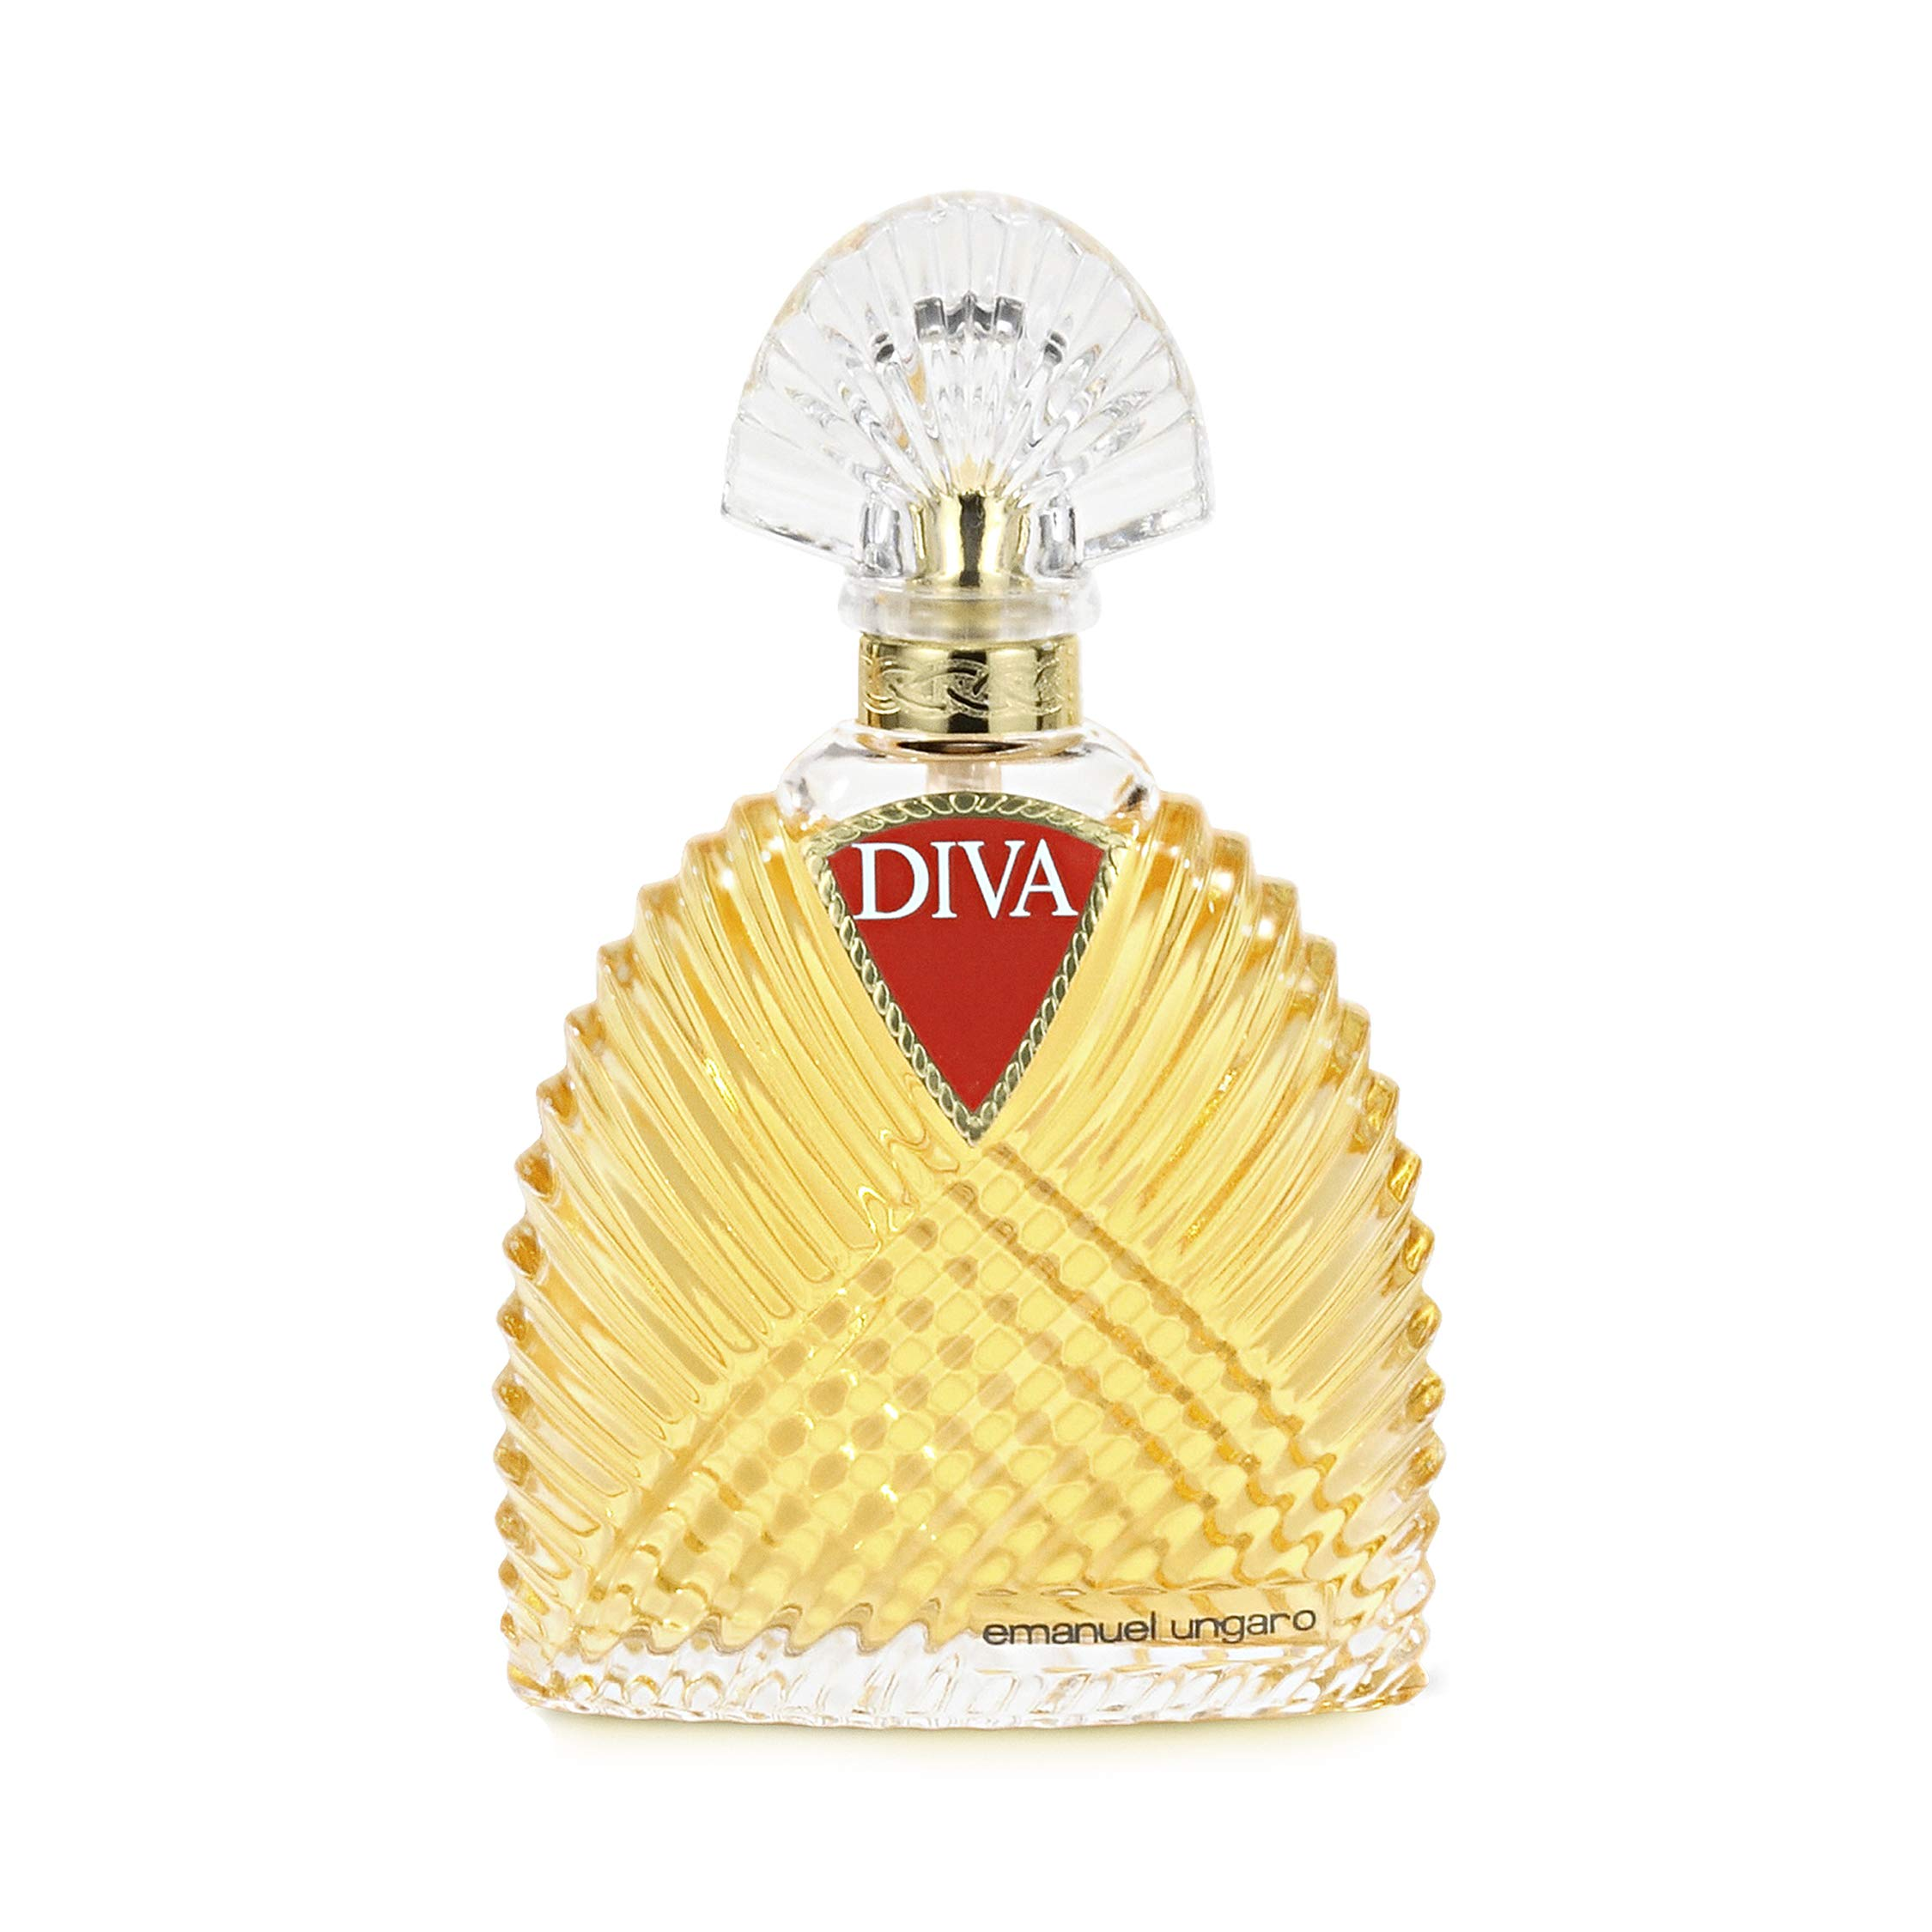 Diva By Ungaro Eau De Parfum Spray 1.7 Oz For Women by Emanuel Ungaro